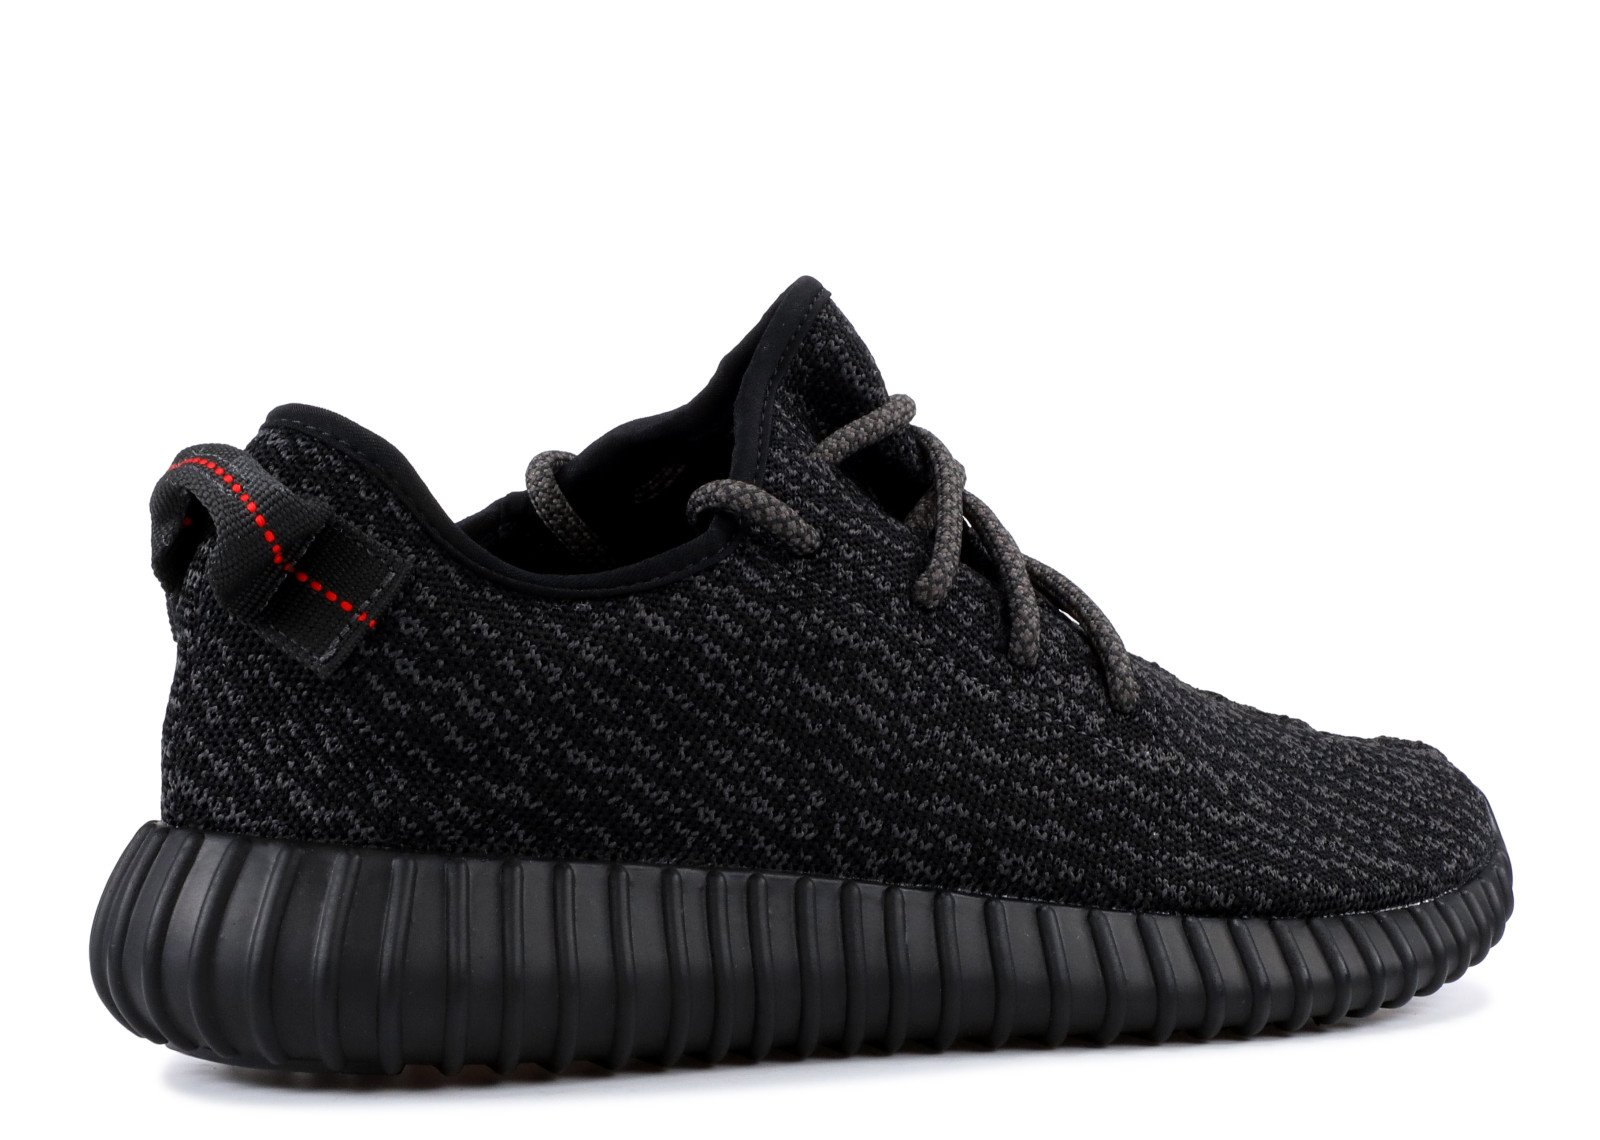 fb3431915 ... release date amazon adidas yeezy boost 350 pirate black 2016 release  bb5350 size 7 4057282979094 books